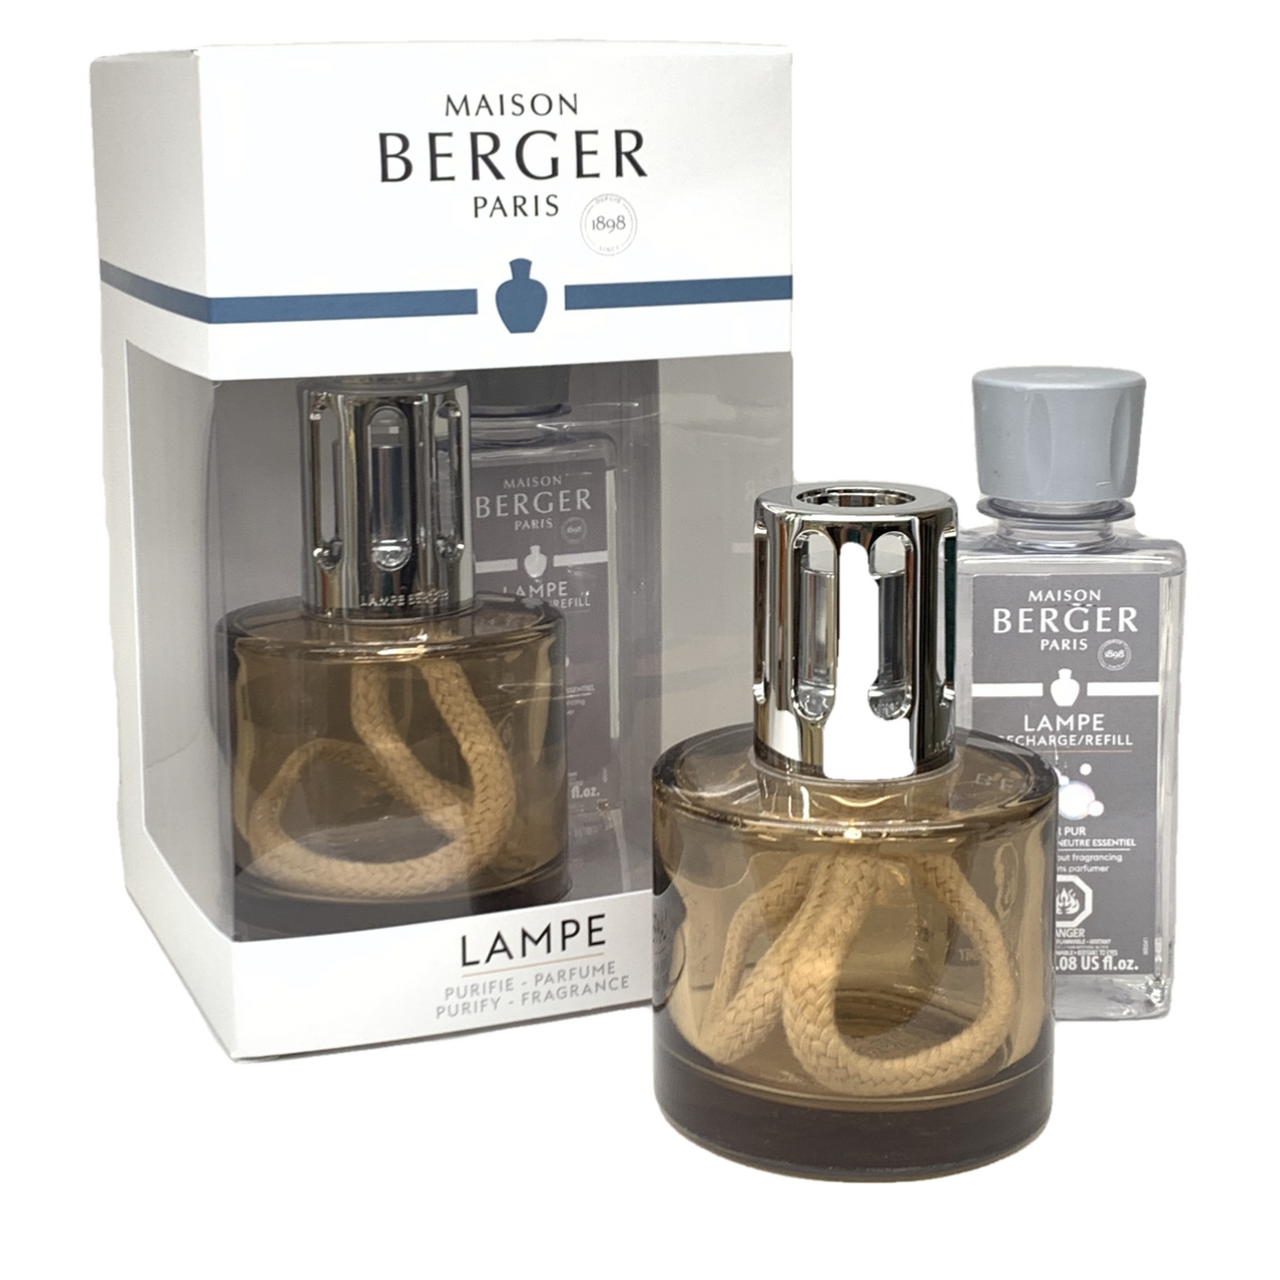 PURE Chestnut Lampe Limited Edition Gift Set By Maison Berger - SALE